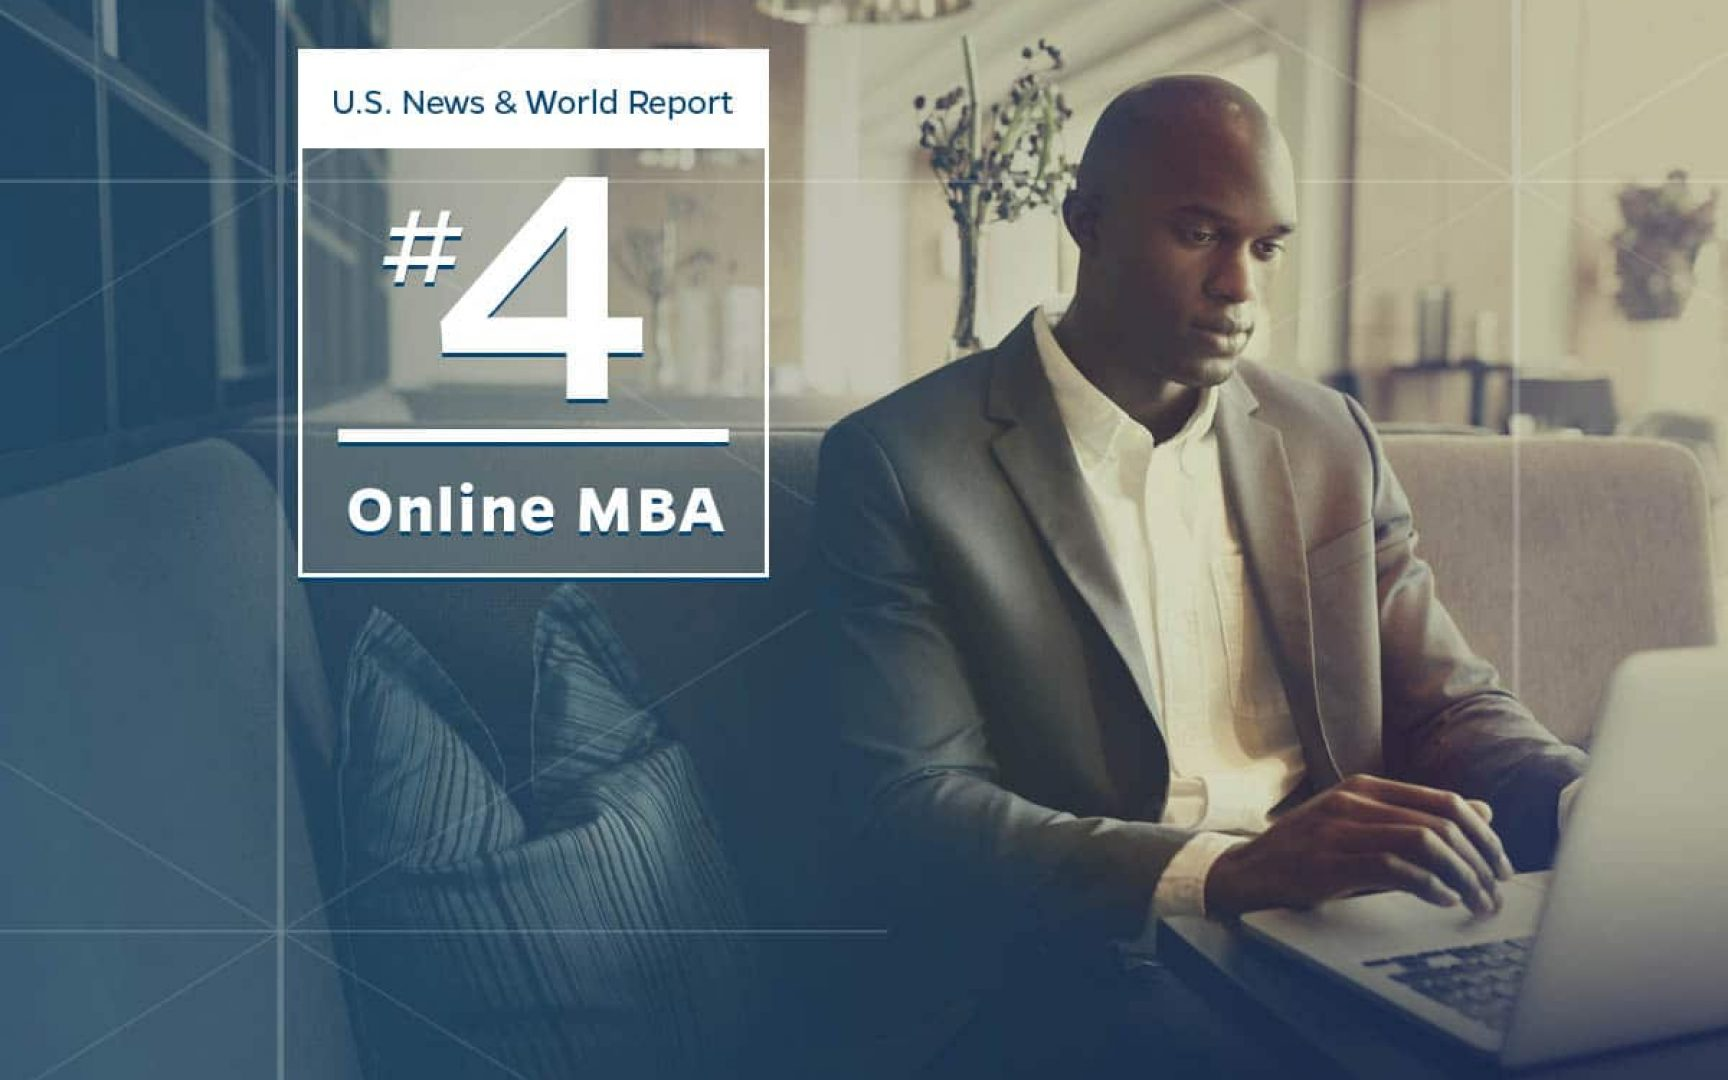 U.S. News & World Report #4 Online MBA